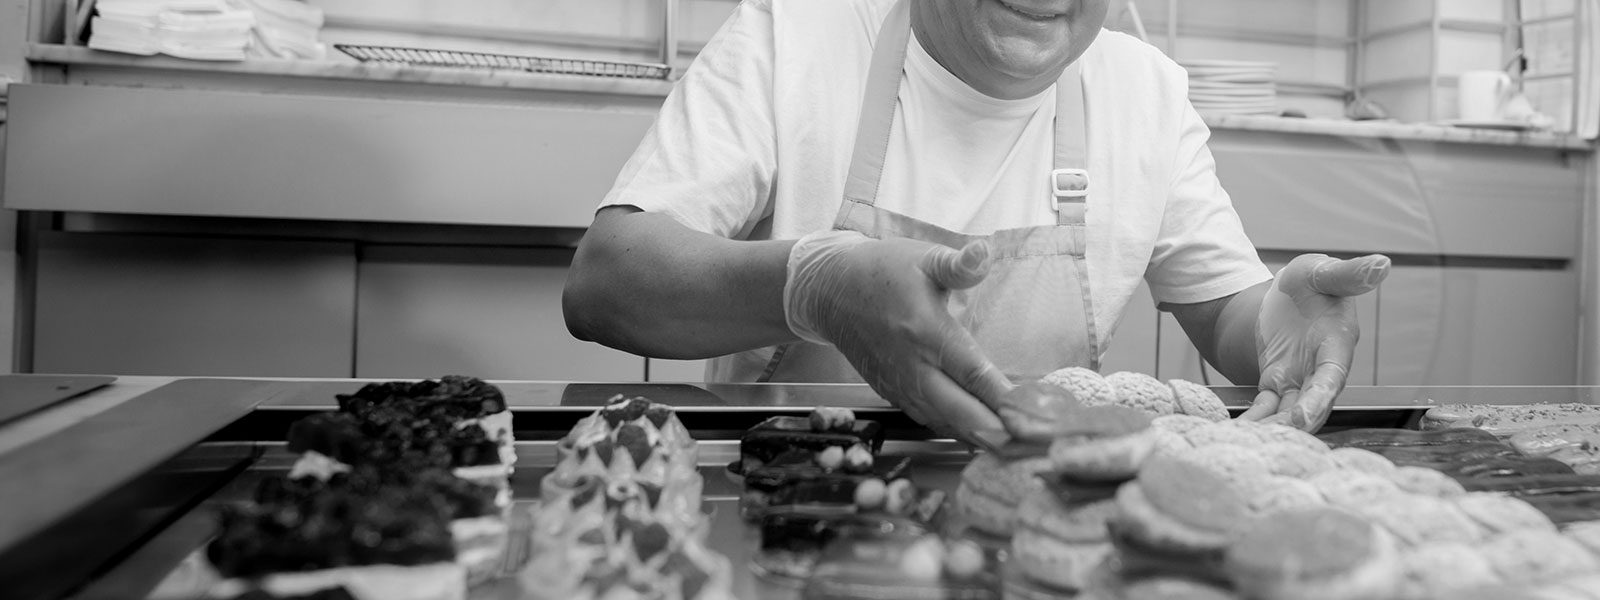 Pastry chef with cakes